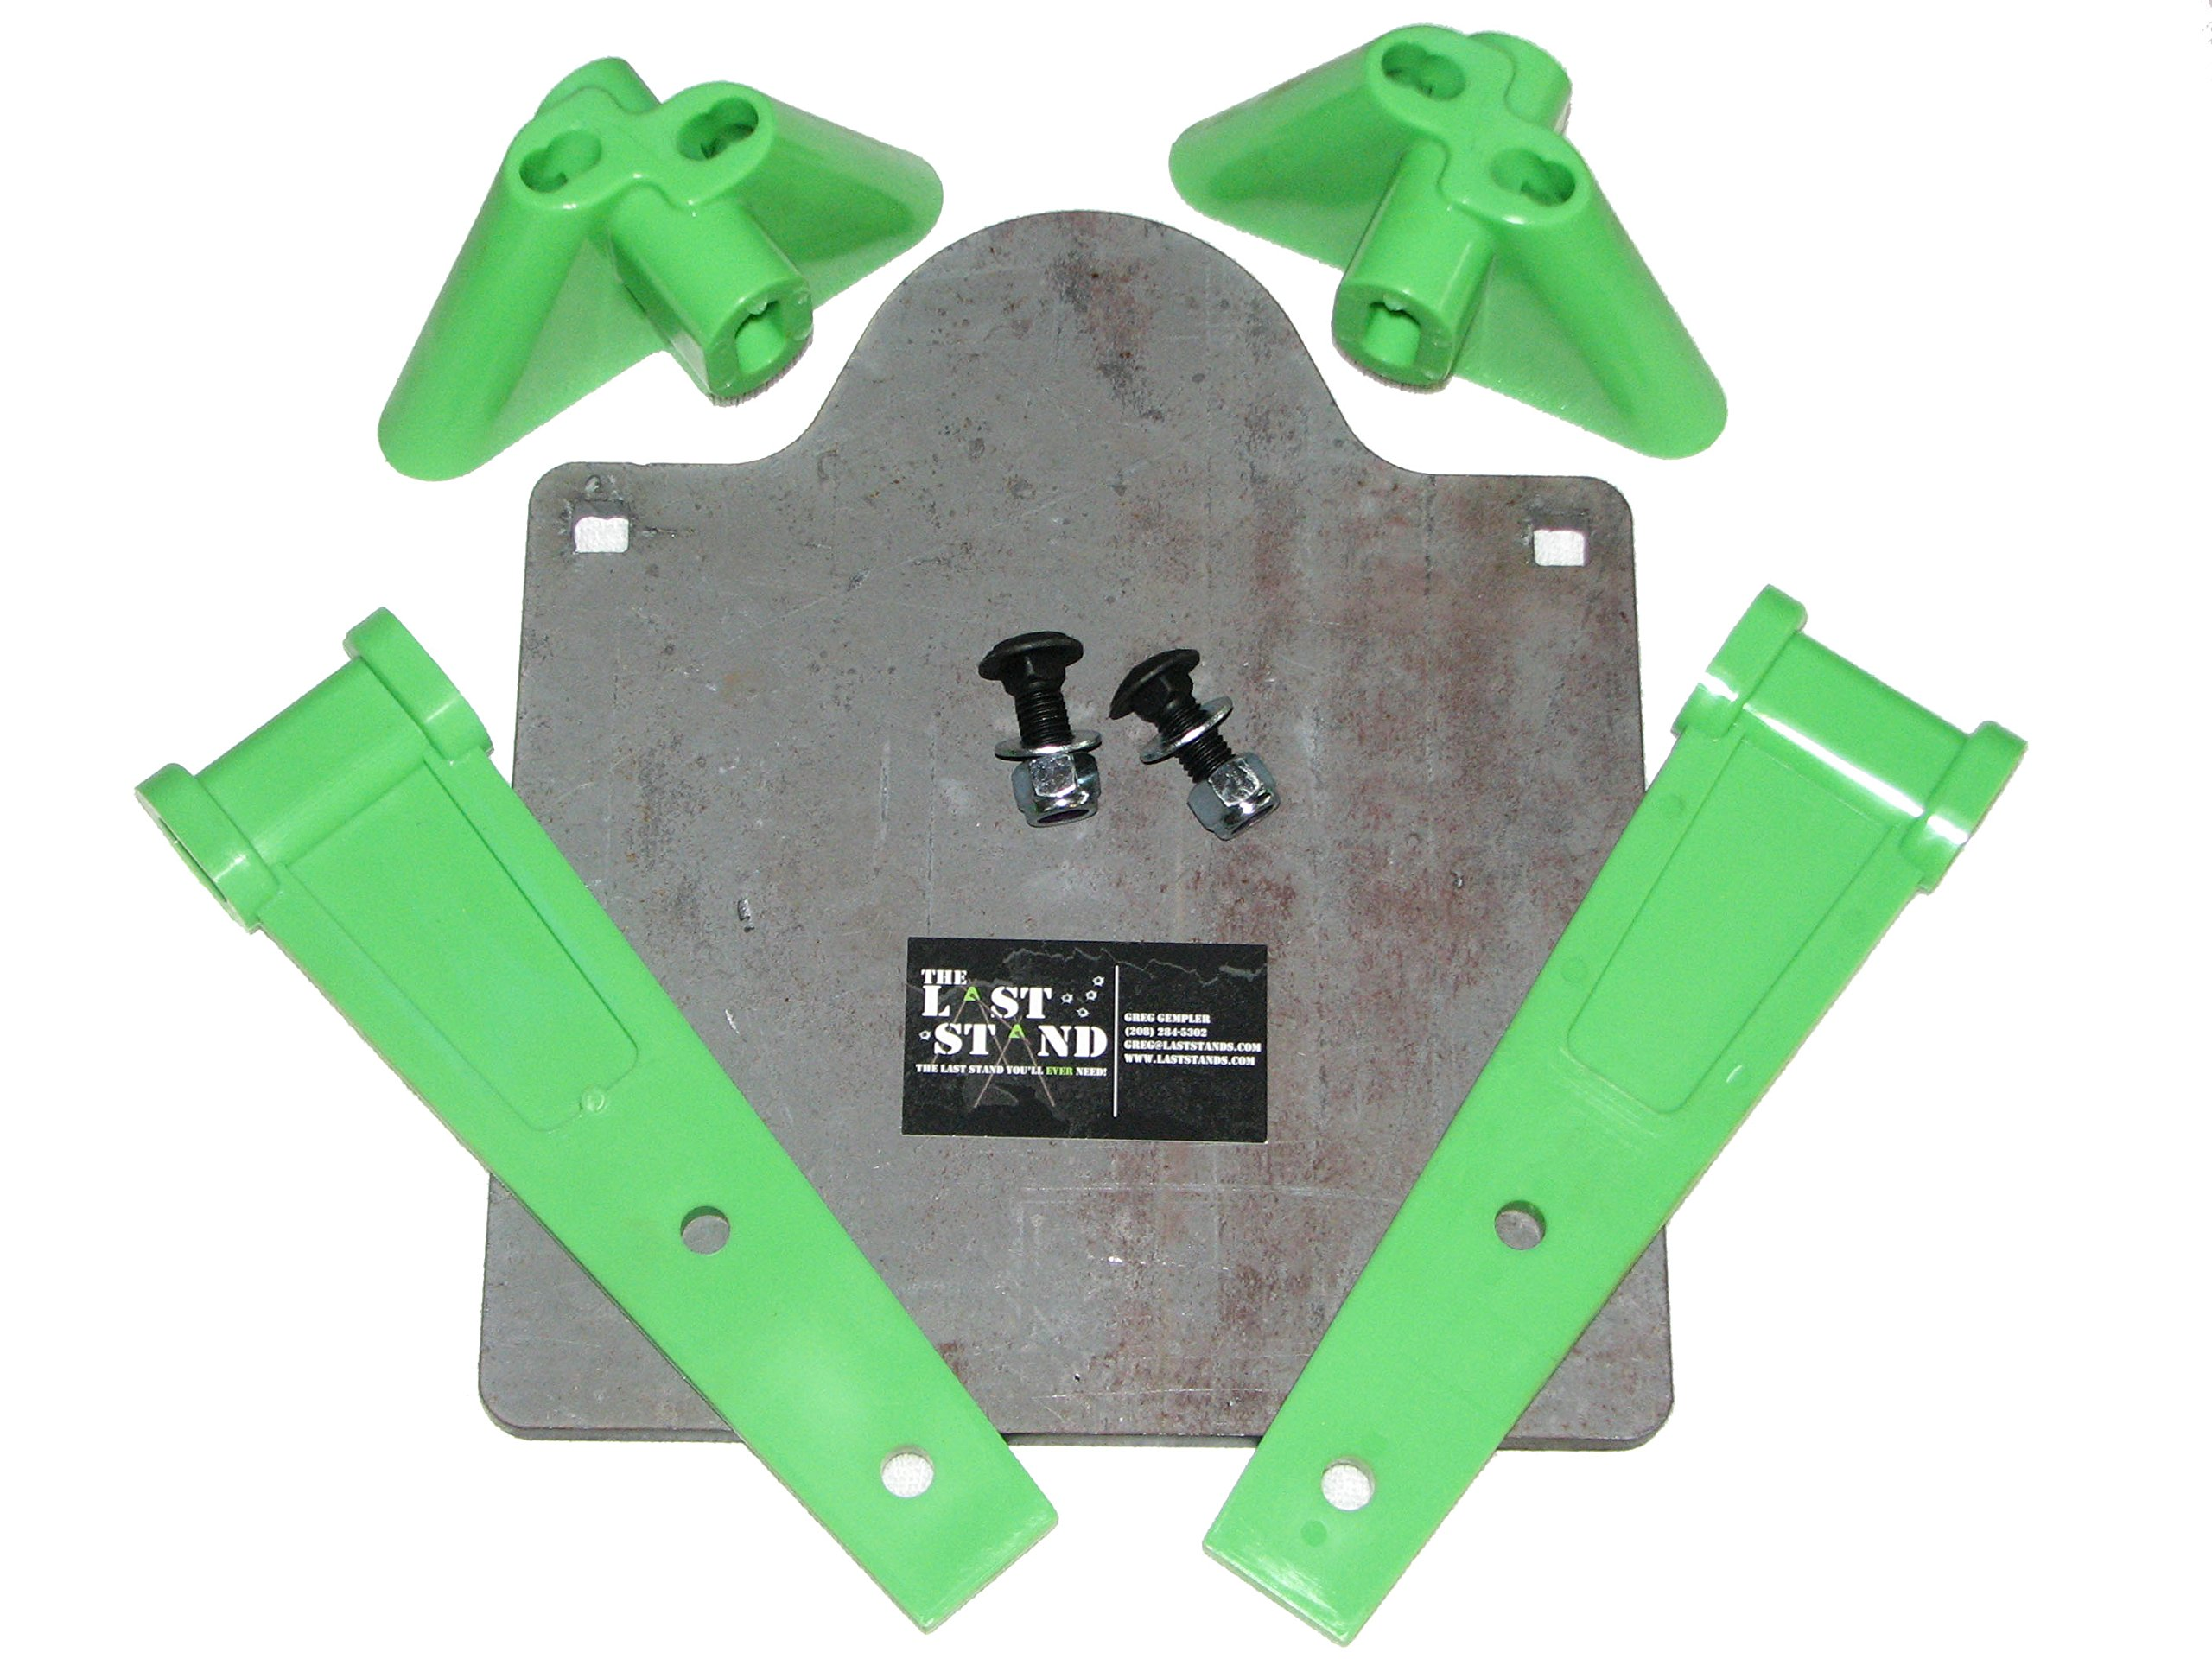 The Last Stand Target Stand Kit